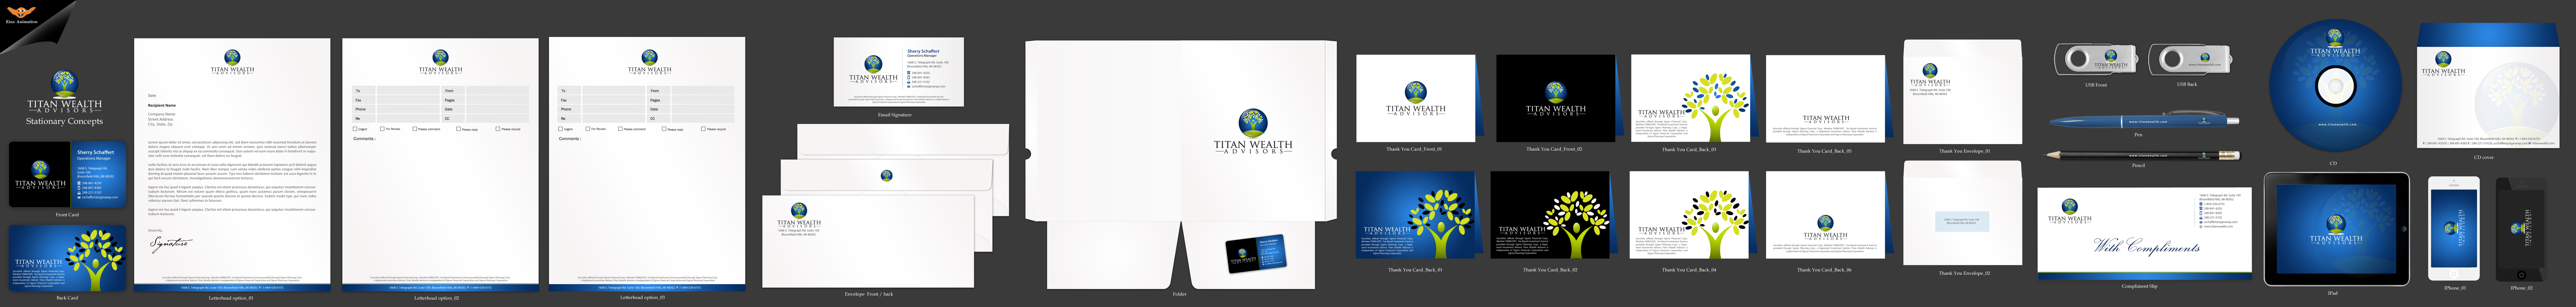 Design Stationary for Financial Services Company - Financial Services